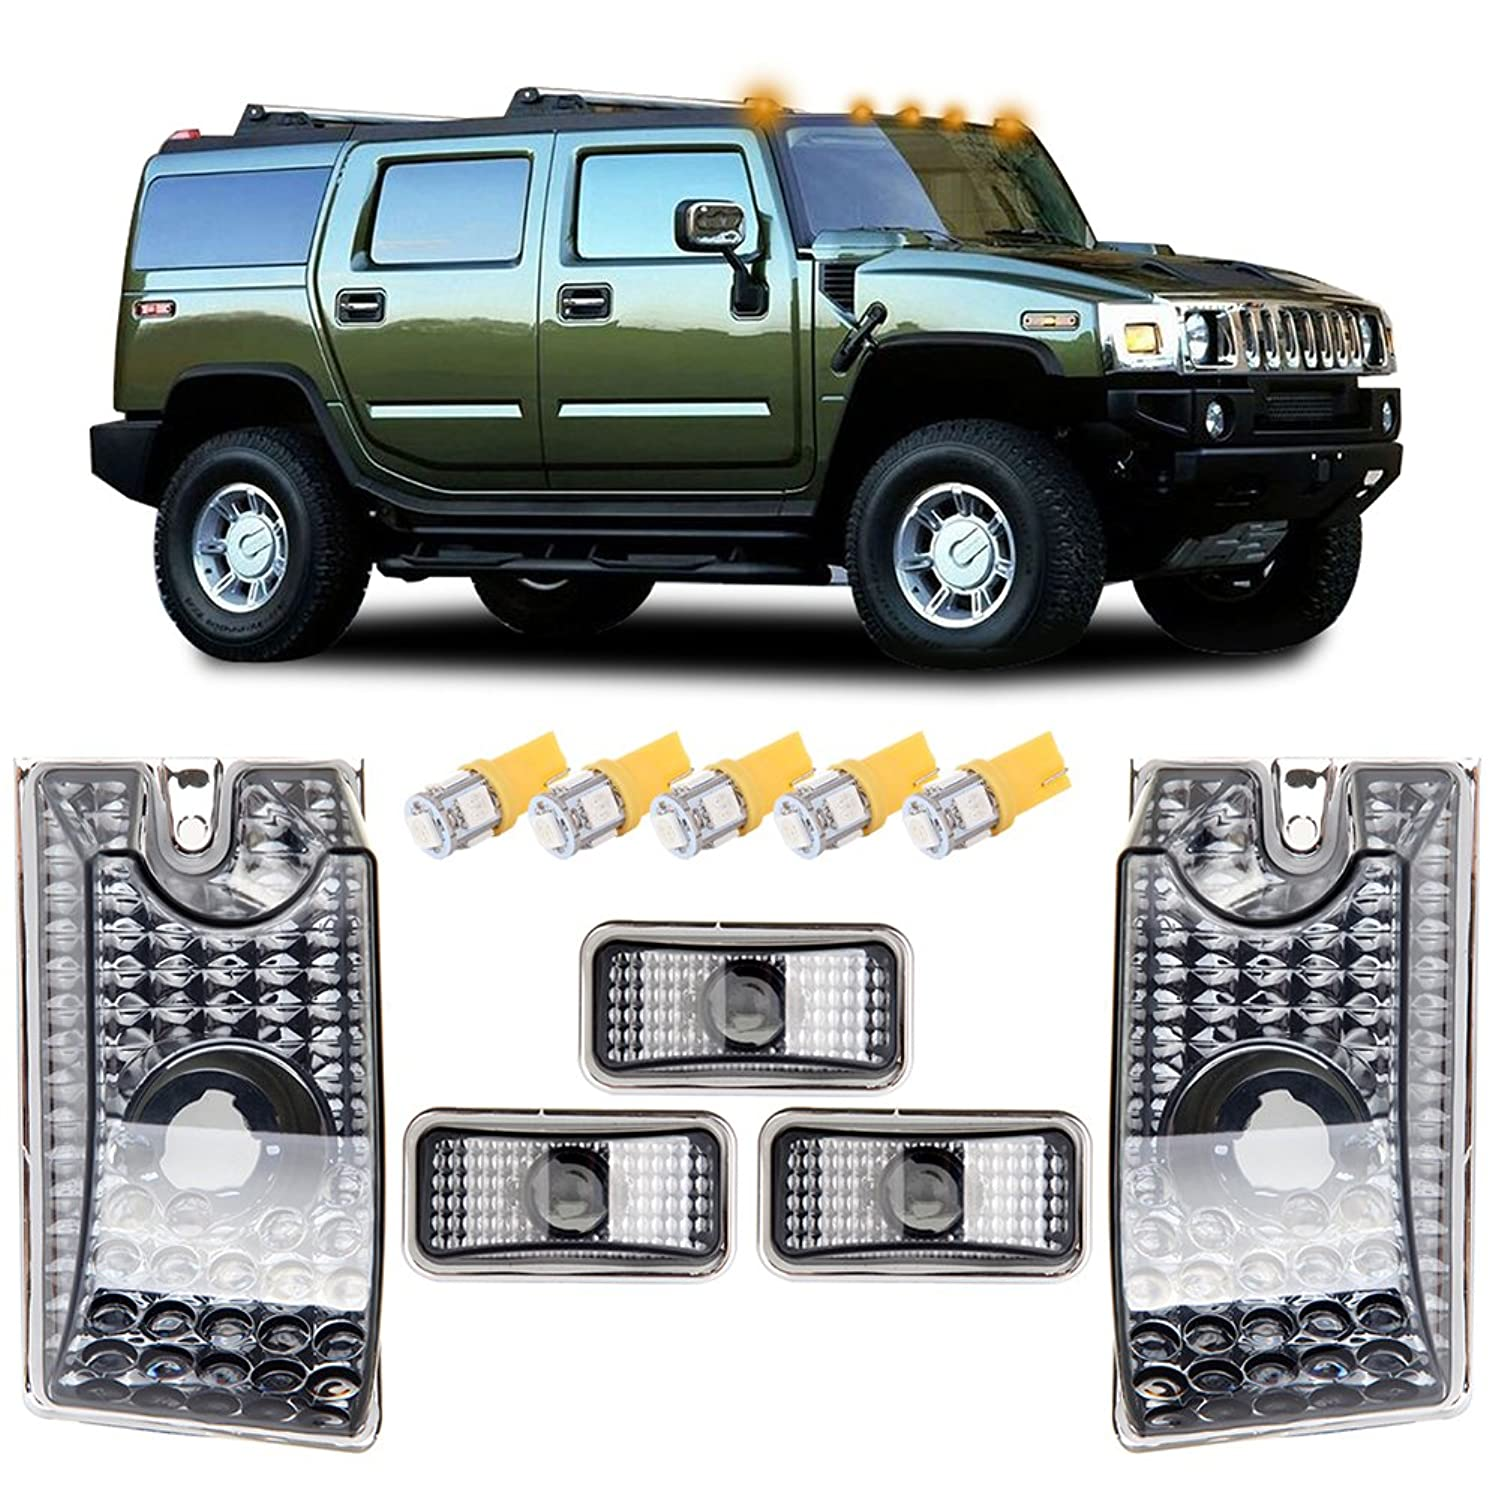 cciyu 5pcs Amber Cab Marker Light Top Roof Marker Light Replacement fit for 2003-2009 Hummer H2